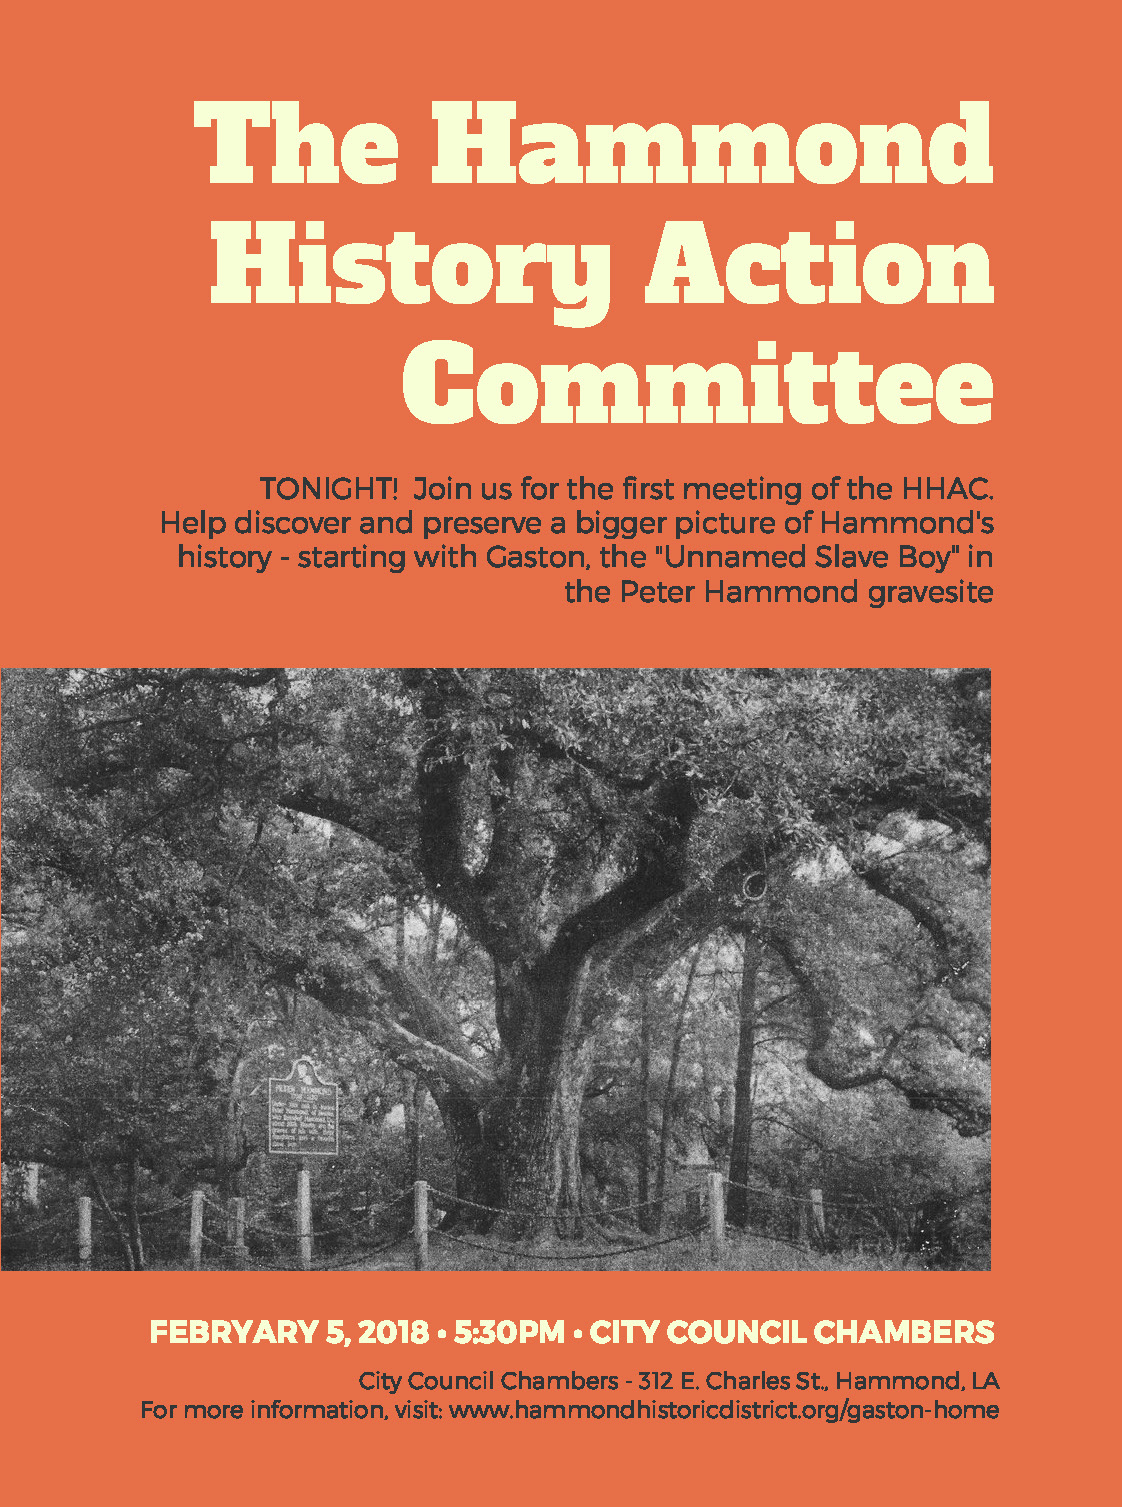 The Hammond History Action Committee Flyer_20180205.jpg